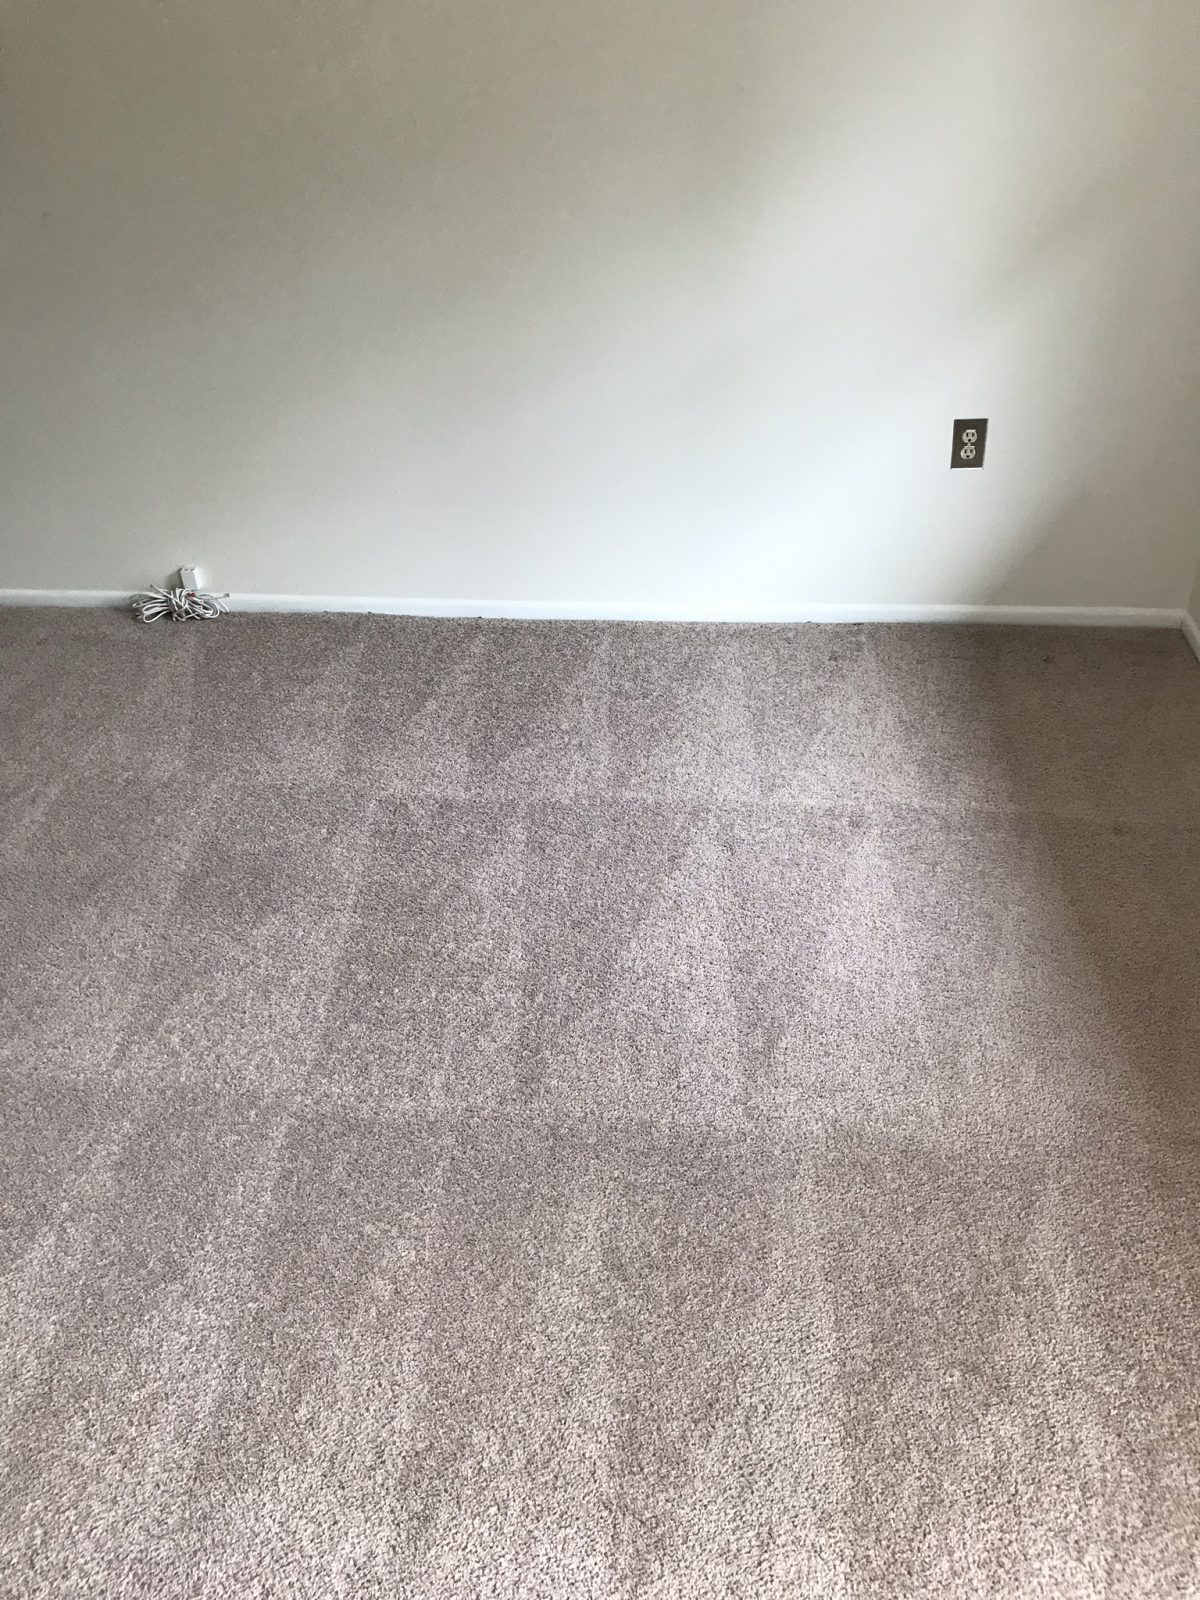 Professional Carpet Cleaning Palm Harbor Florida by Howards Cleaning Service